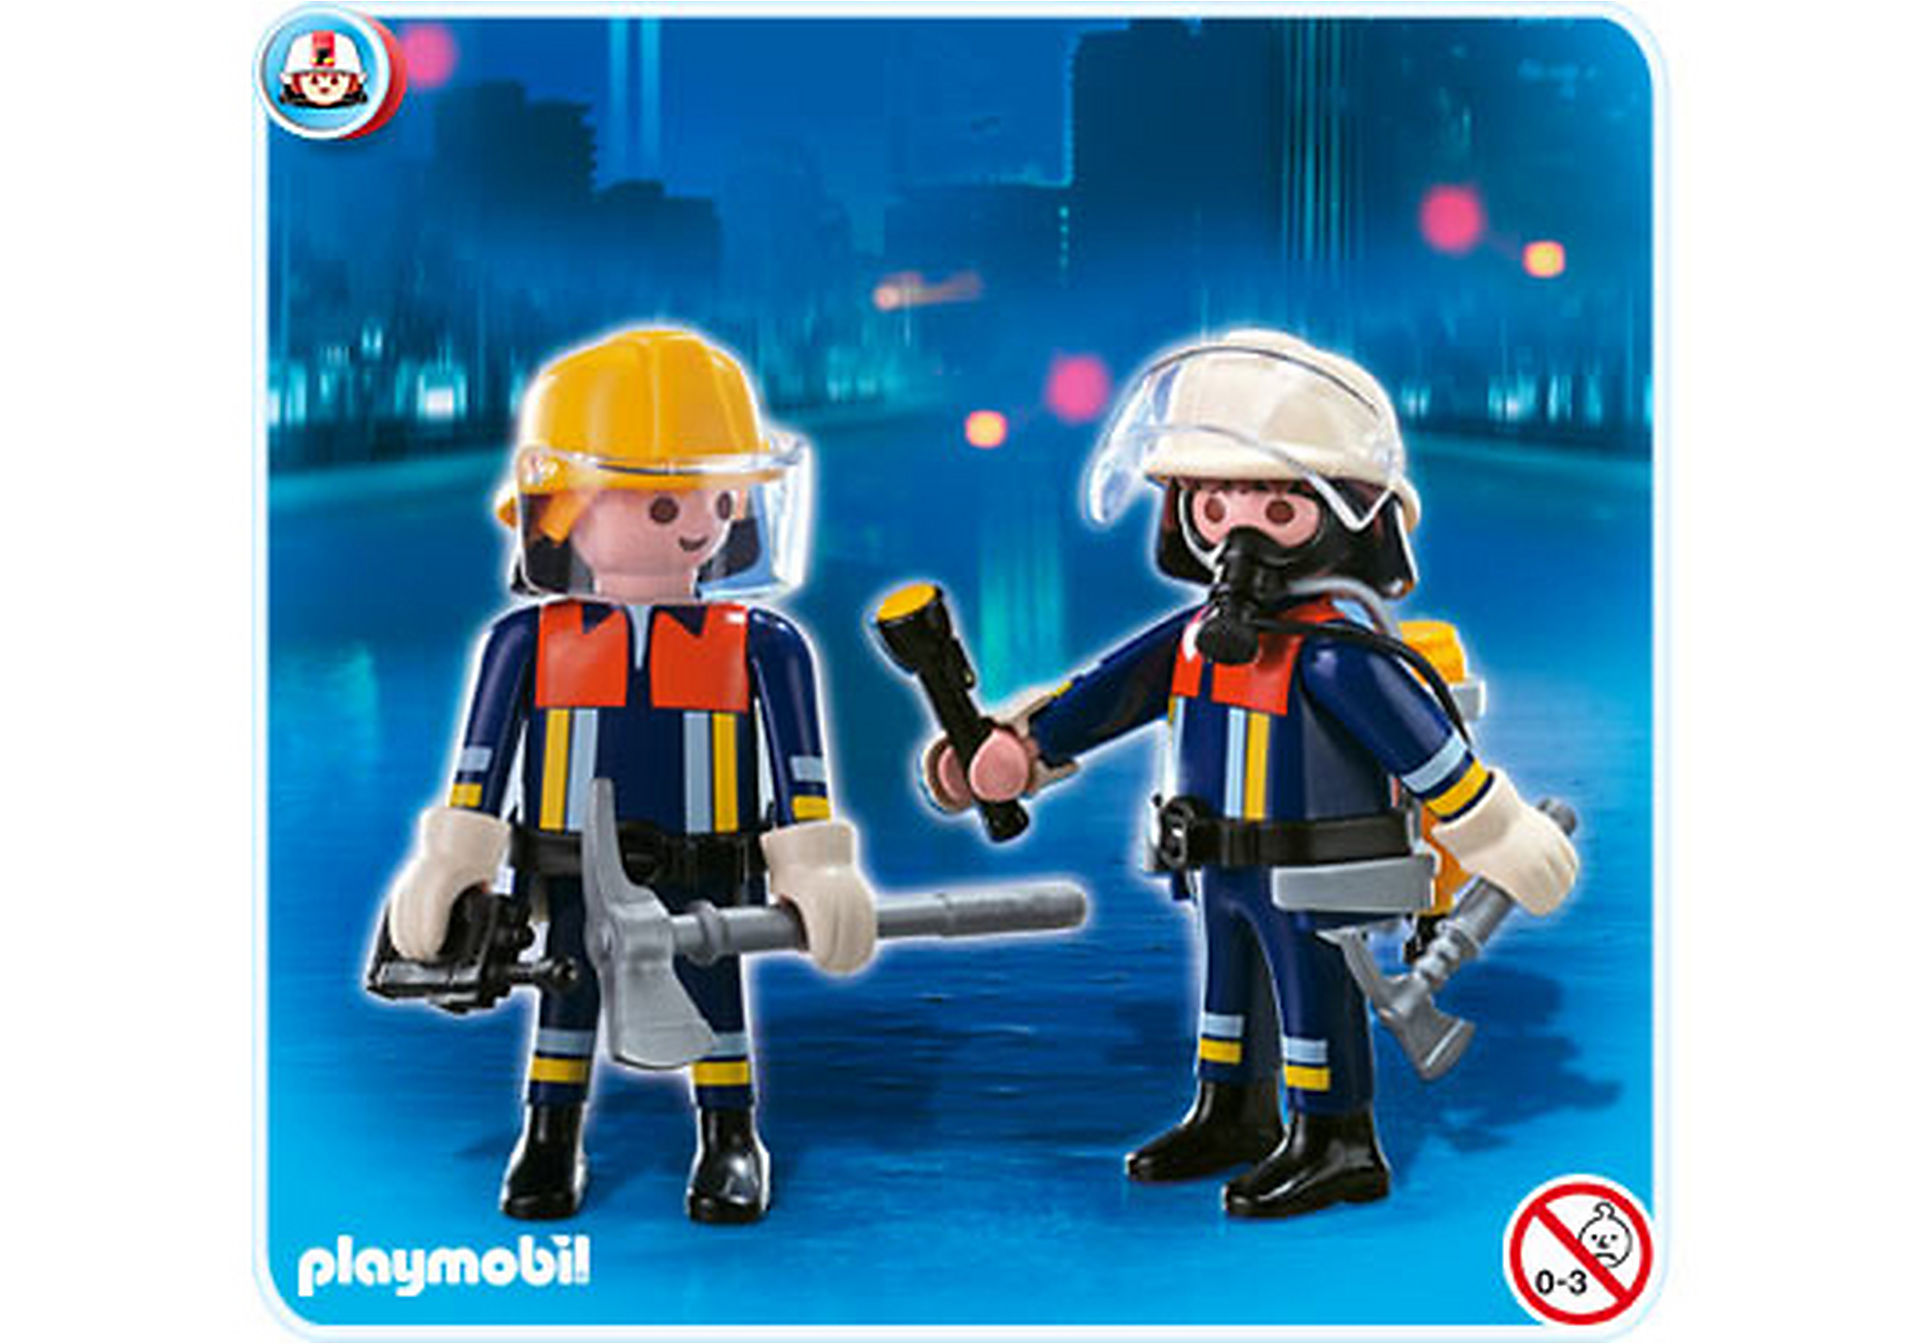 http://media.playmobil.com/i/playmobil/4914-A_product_detail/Duo-Pack Feuerwehrtrupp